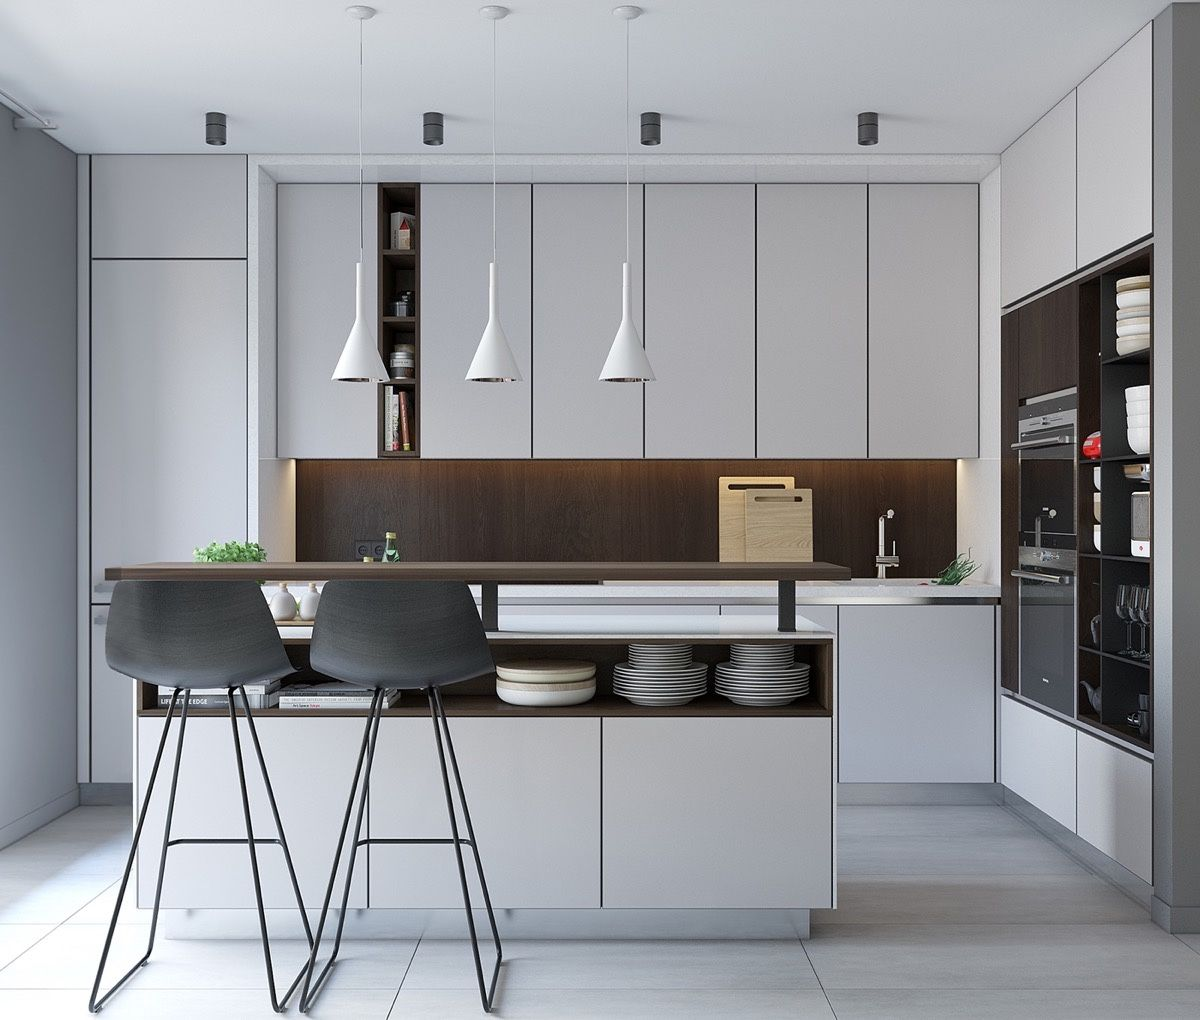 For so many families the kitchen is a focal point of the home. Not only do parents spend hours each week cooking children sidle up to the kitchen bar for ... & 40 Minimalist Kitchens to Get Super Sleek Inspiration | Kitchen ...